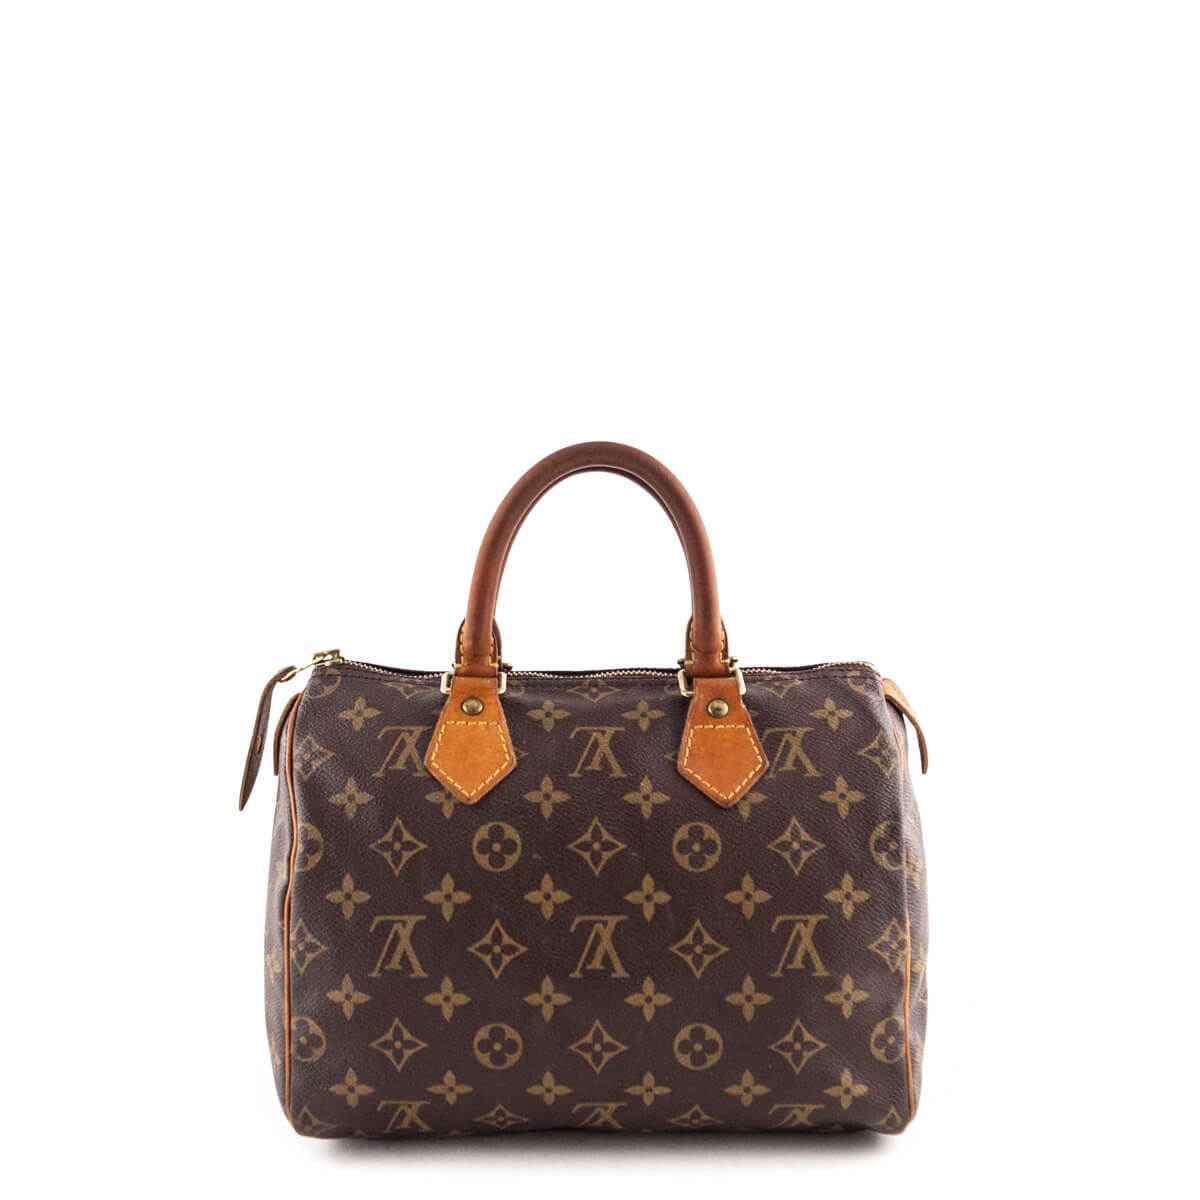 84b41accb0c7 ... Louis Vuitton Monogram Speedy 25 - LOVE that BAG - Preowned Authentic  Designer Handbags ...